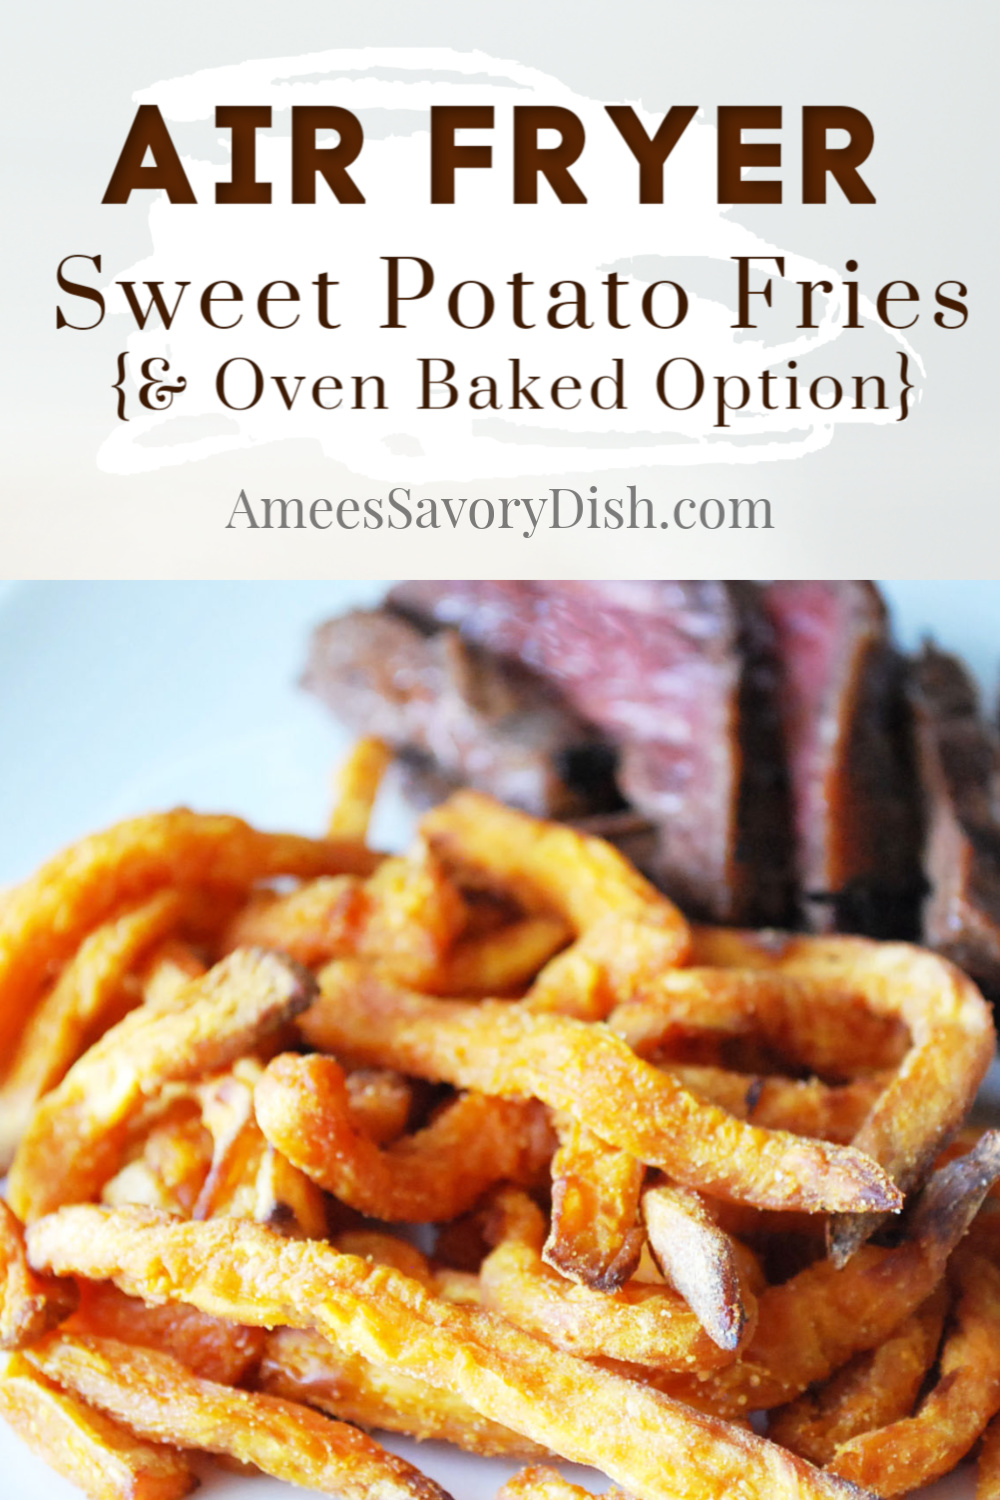 A healthier recipe for making sweet potato fries using less oil in an air fryer. The result is a tender, yet crispy lightened-up french fry. via @Ameecooks